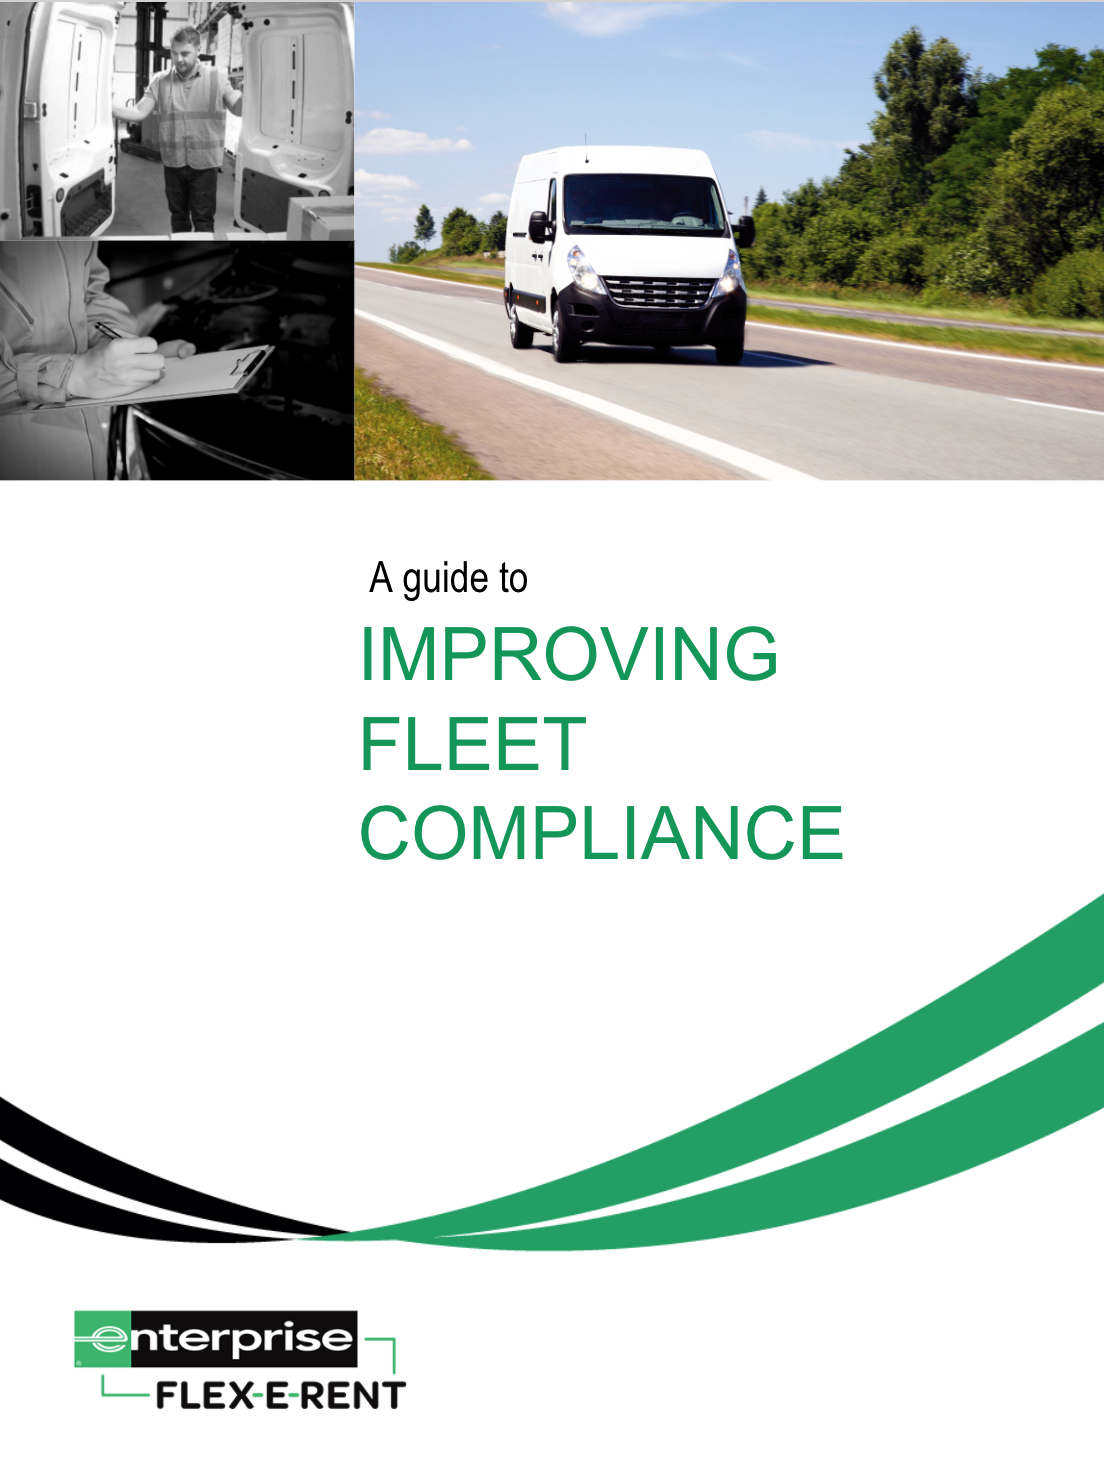 Flex-E-Rent-A-guide-to-improving-fleet-compliance-cover.png